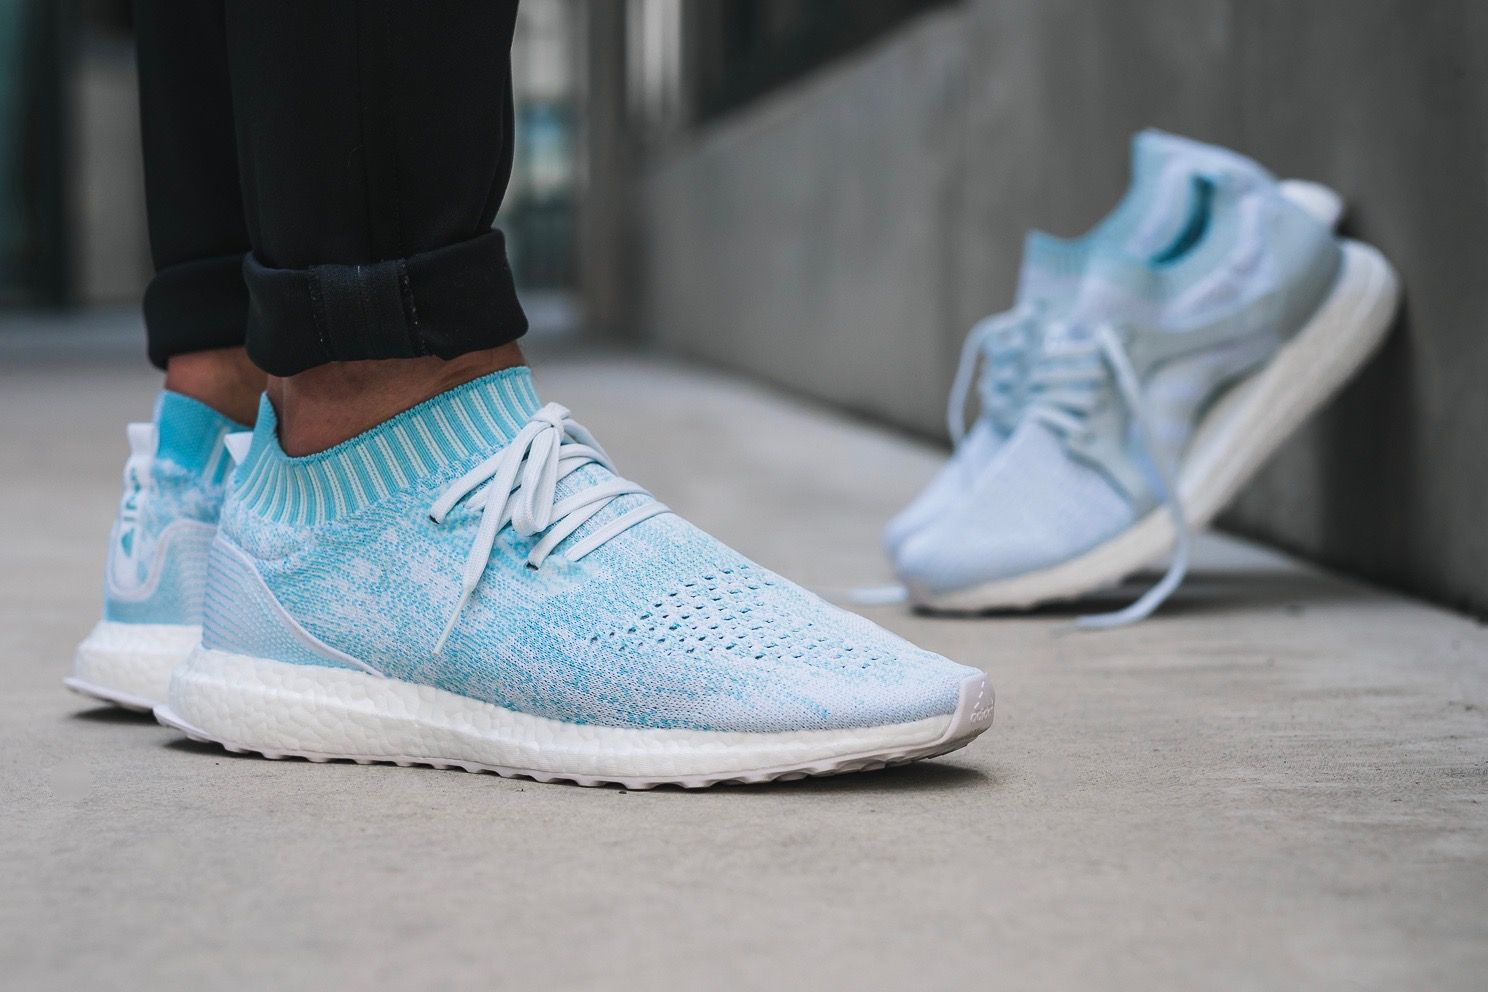 217e1bd84 adidas x Parley Ultra Boost - Solebox On Foot Preview - EU Kicks  Sneaker  Magazine